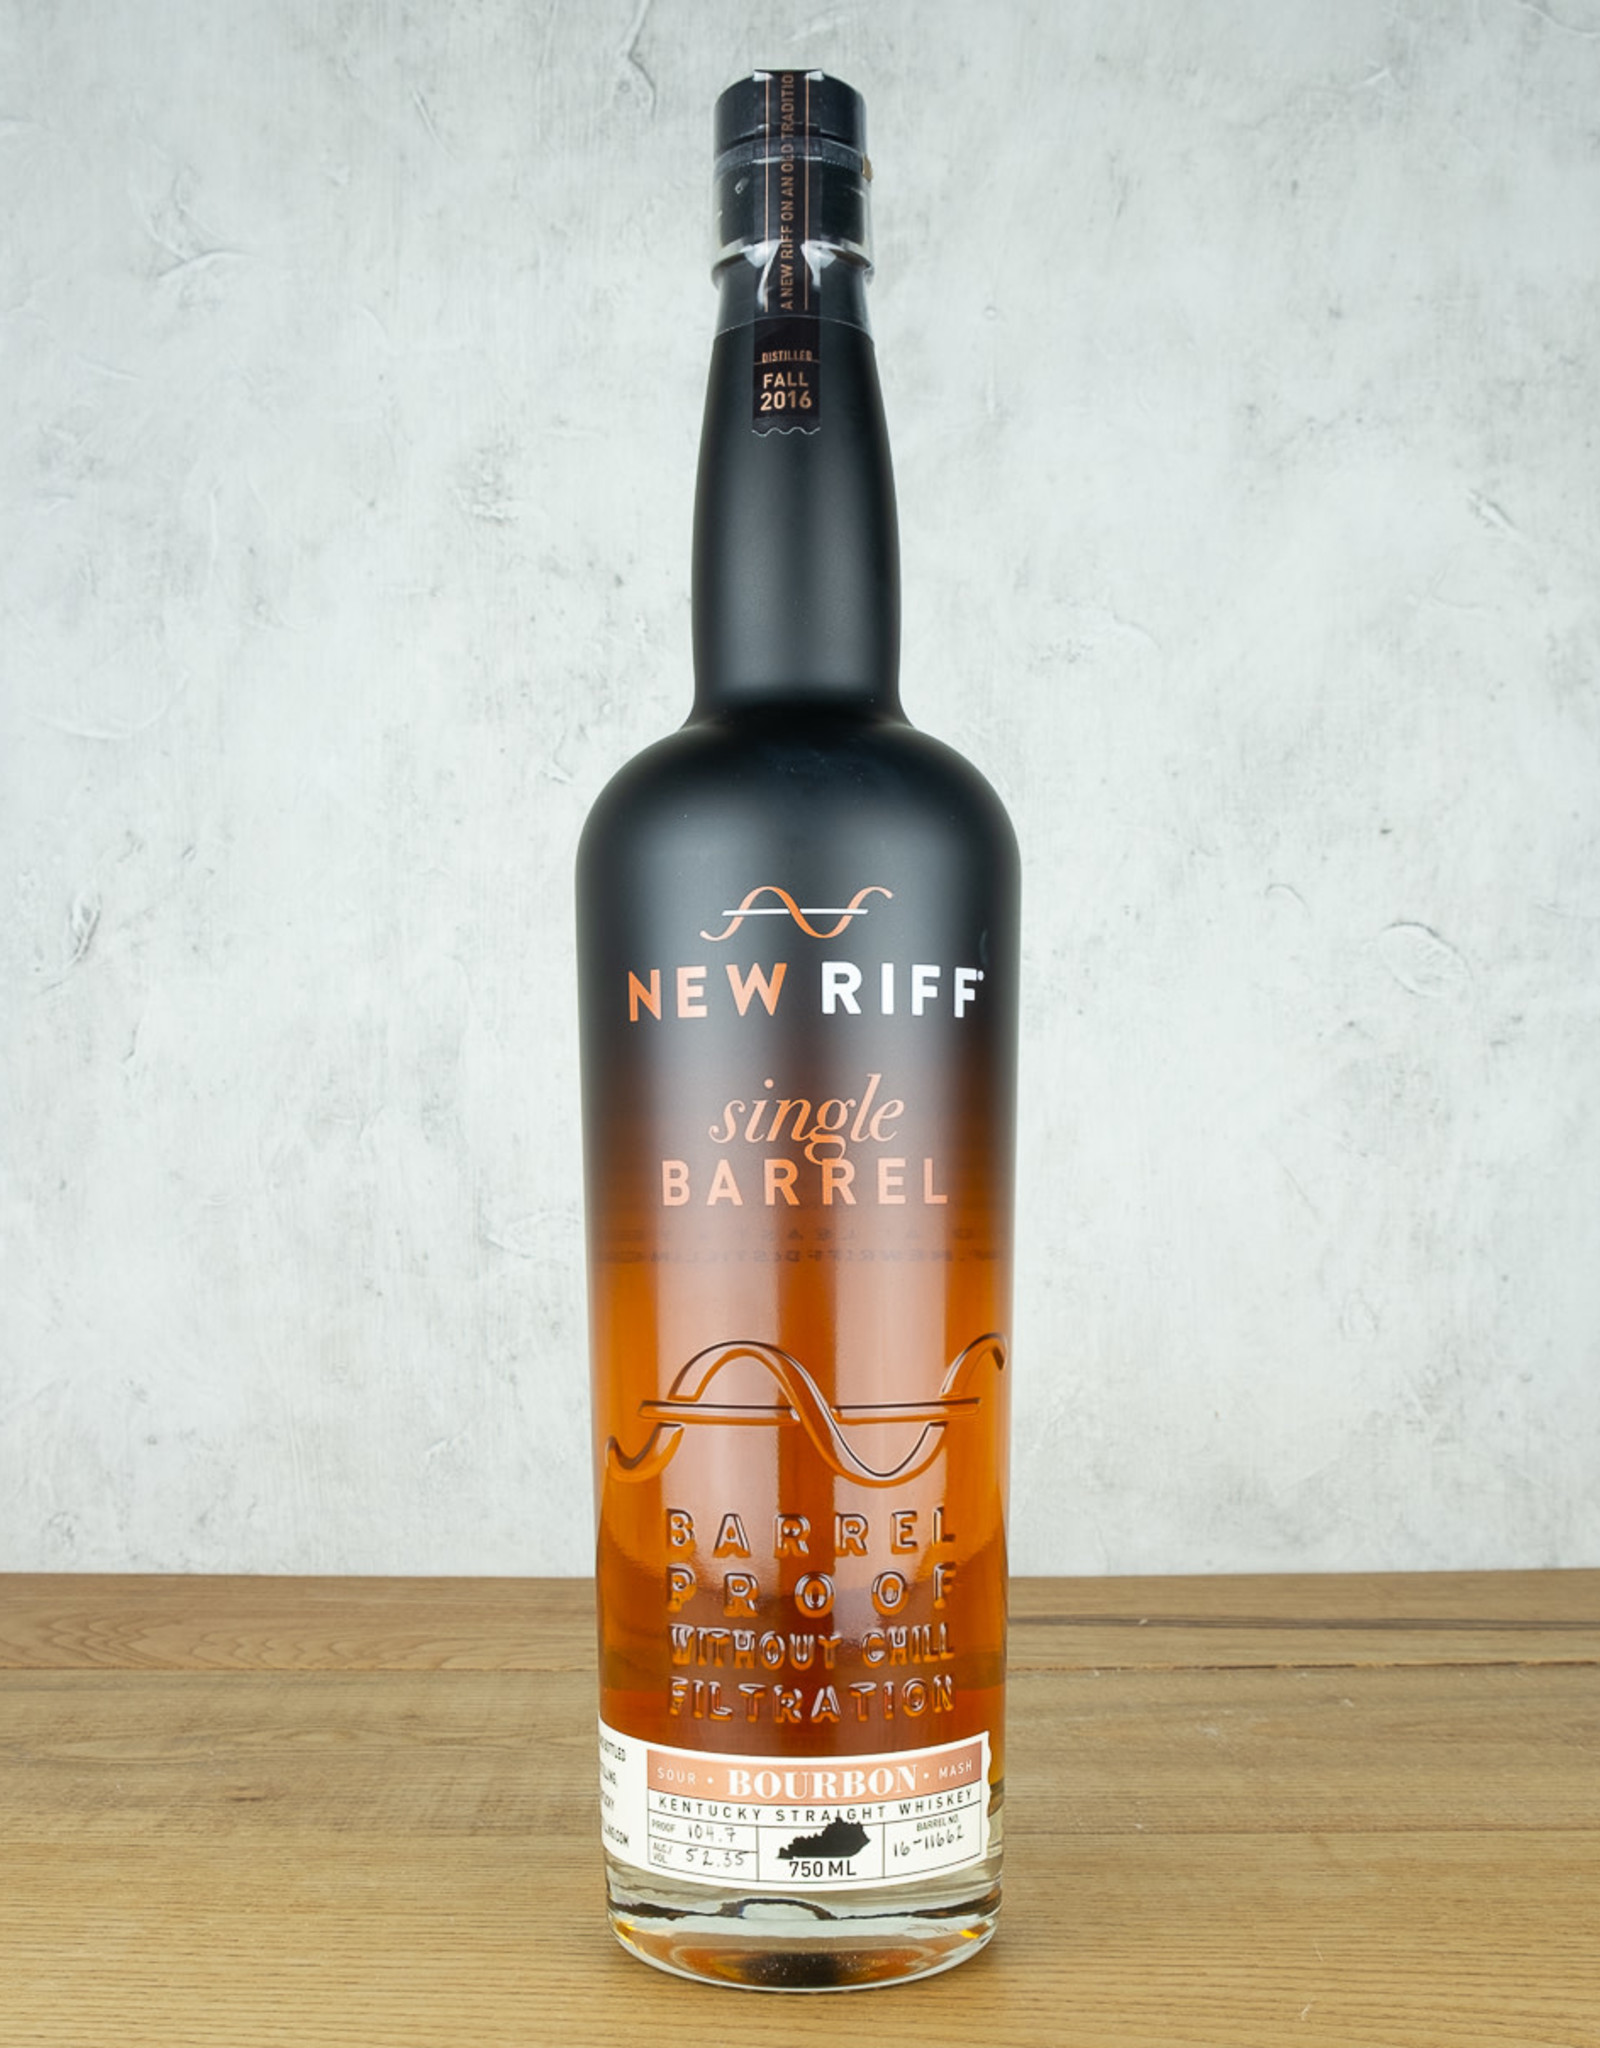 New Riff Single Barrel Bourbon